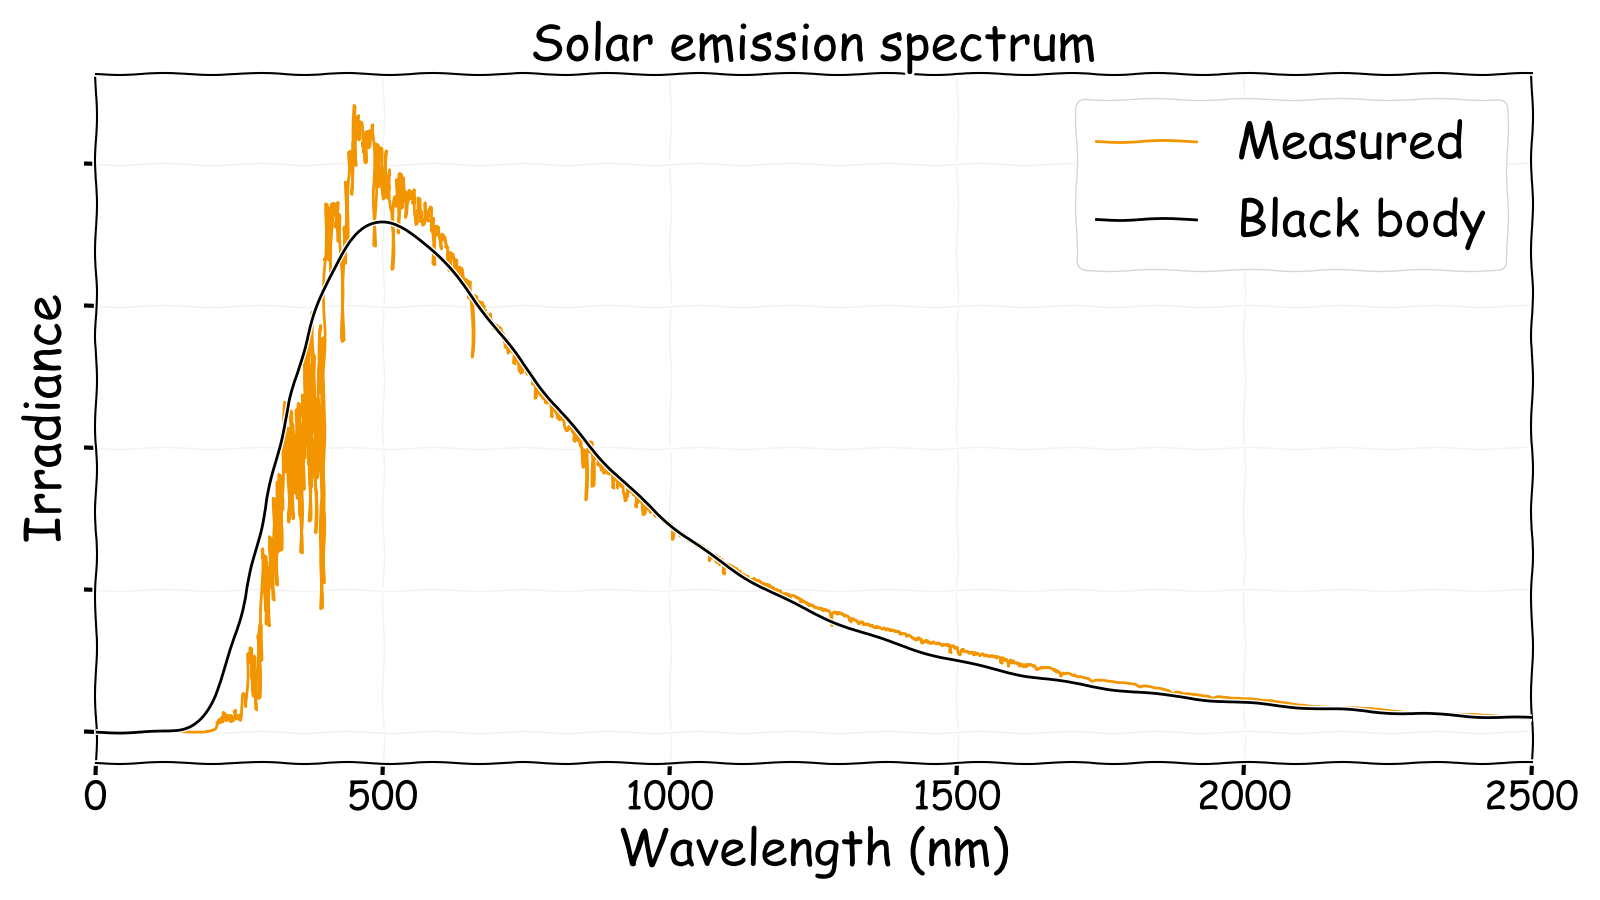 Solar emission spectrum compared with a black body